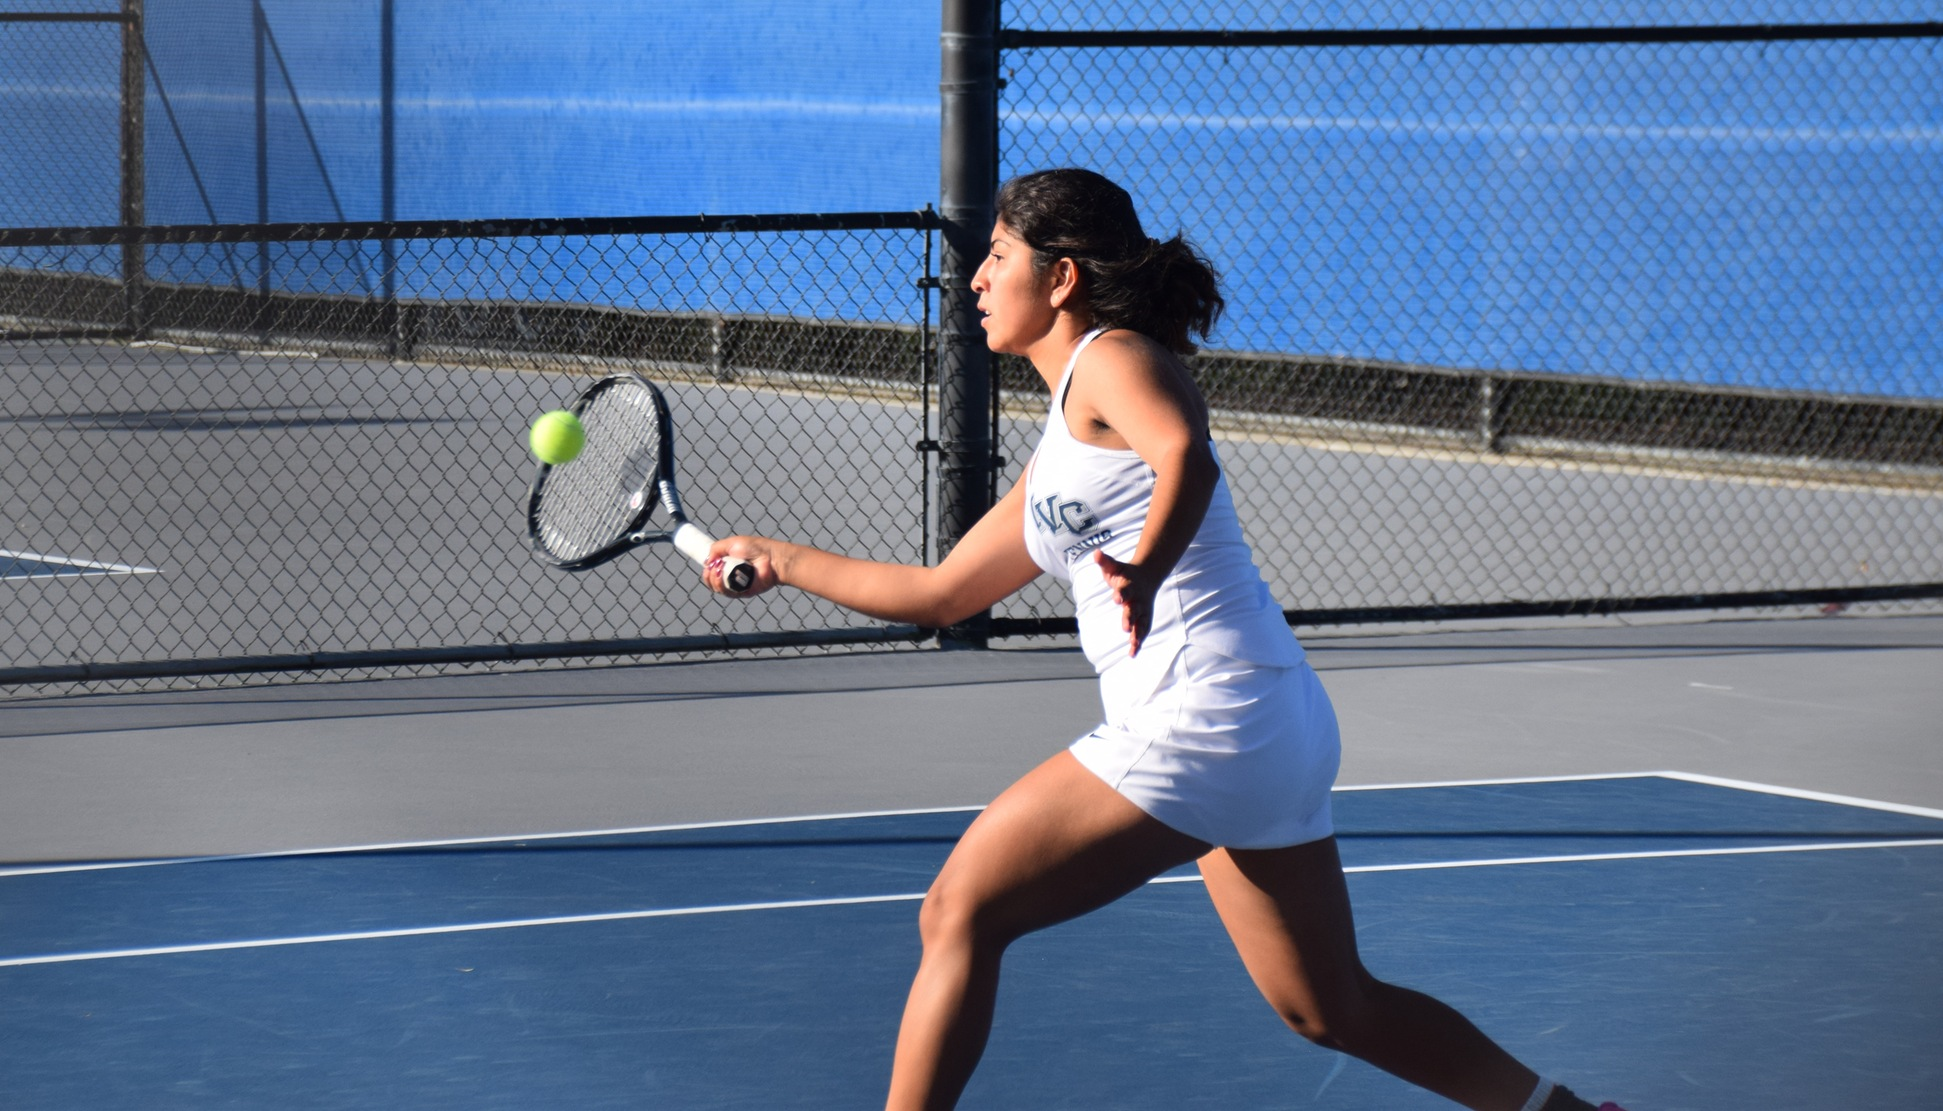 Women's tennis team earns 7-2 conference win at Fullerton